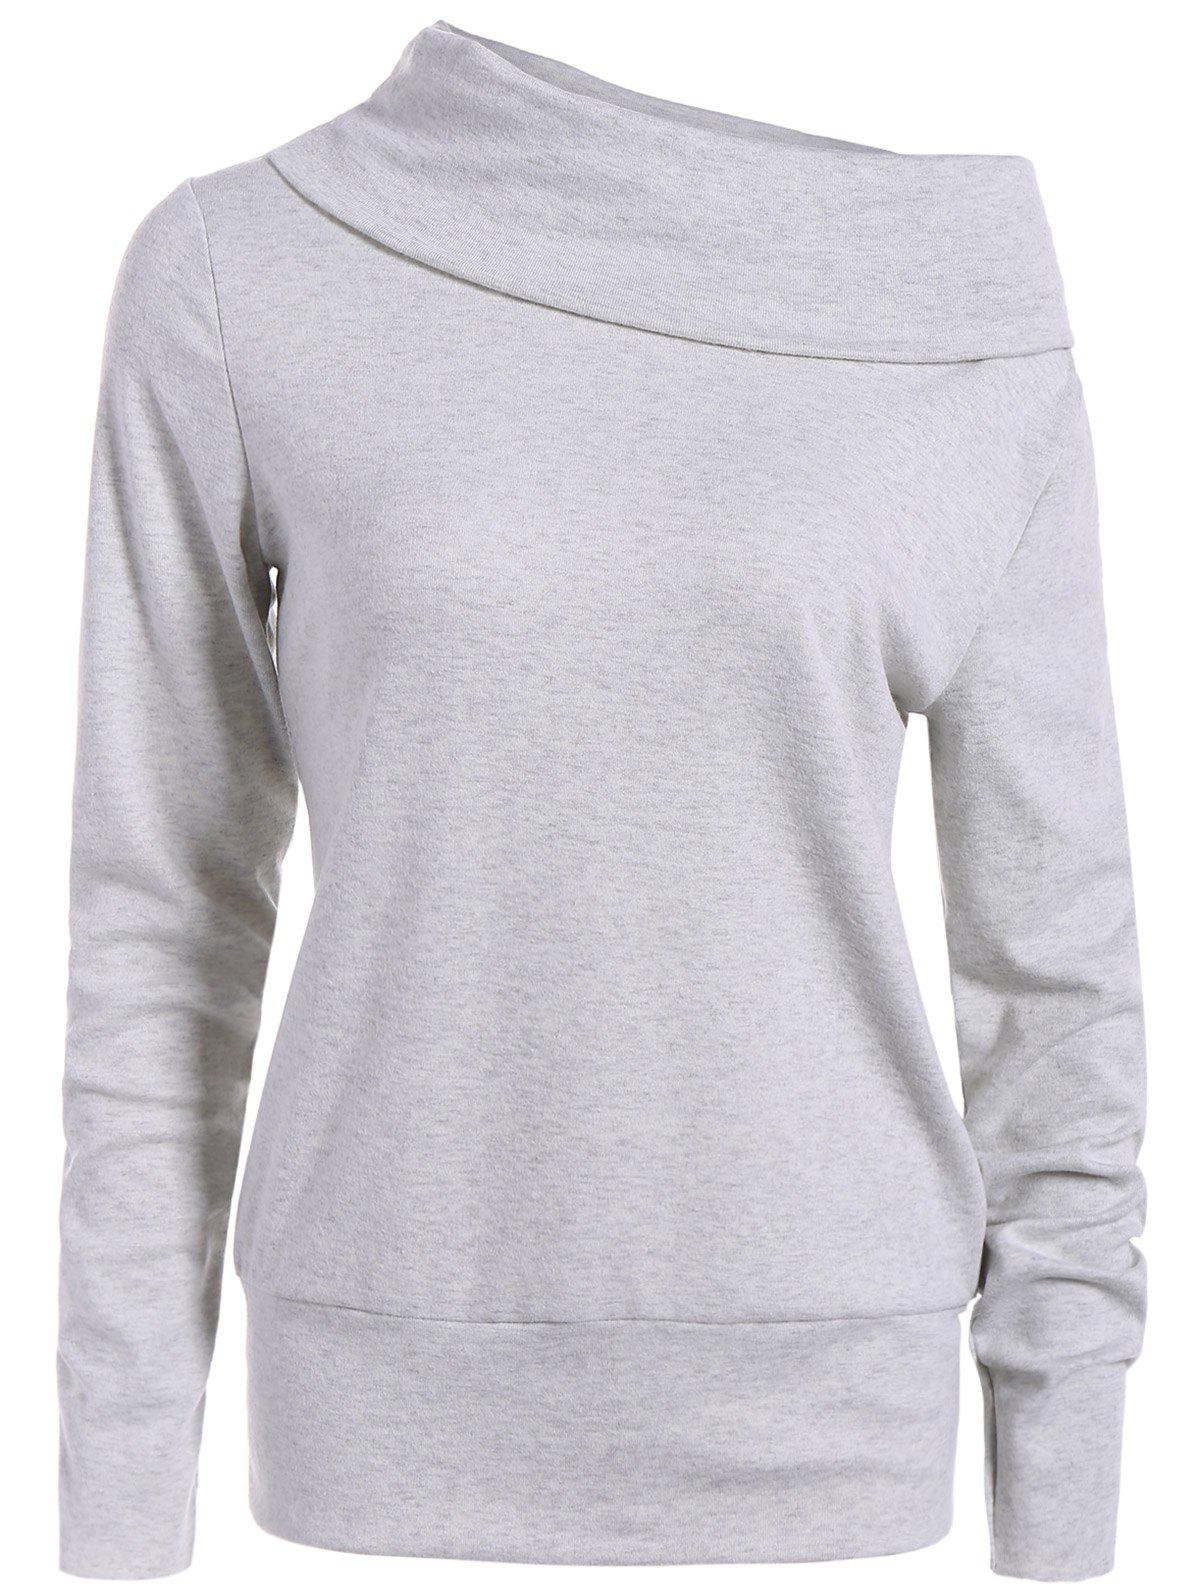 Haut Long Neck Sleeve Sweatshirt - Gris clair 2XL